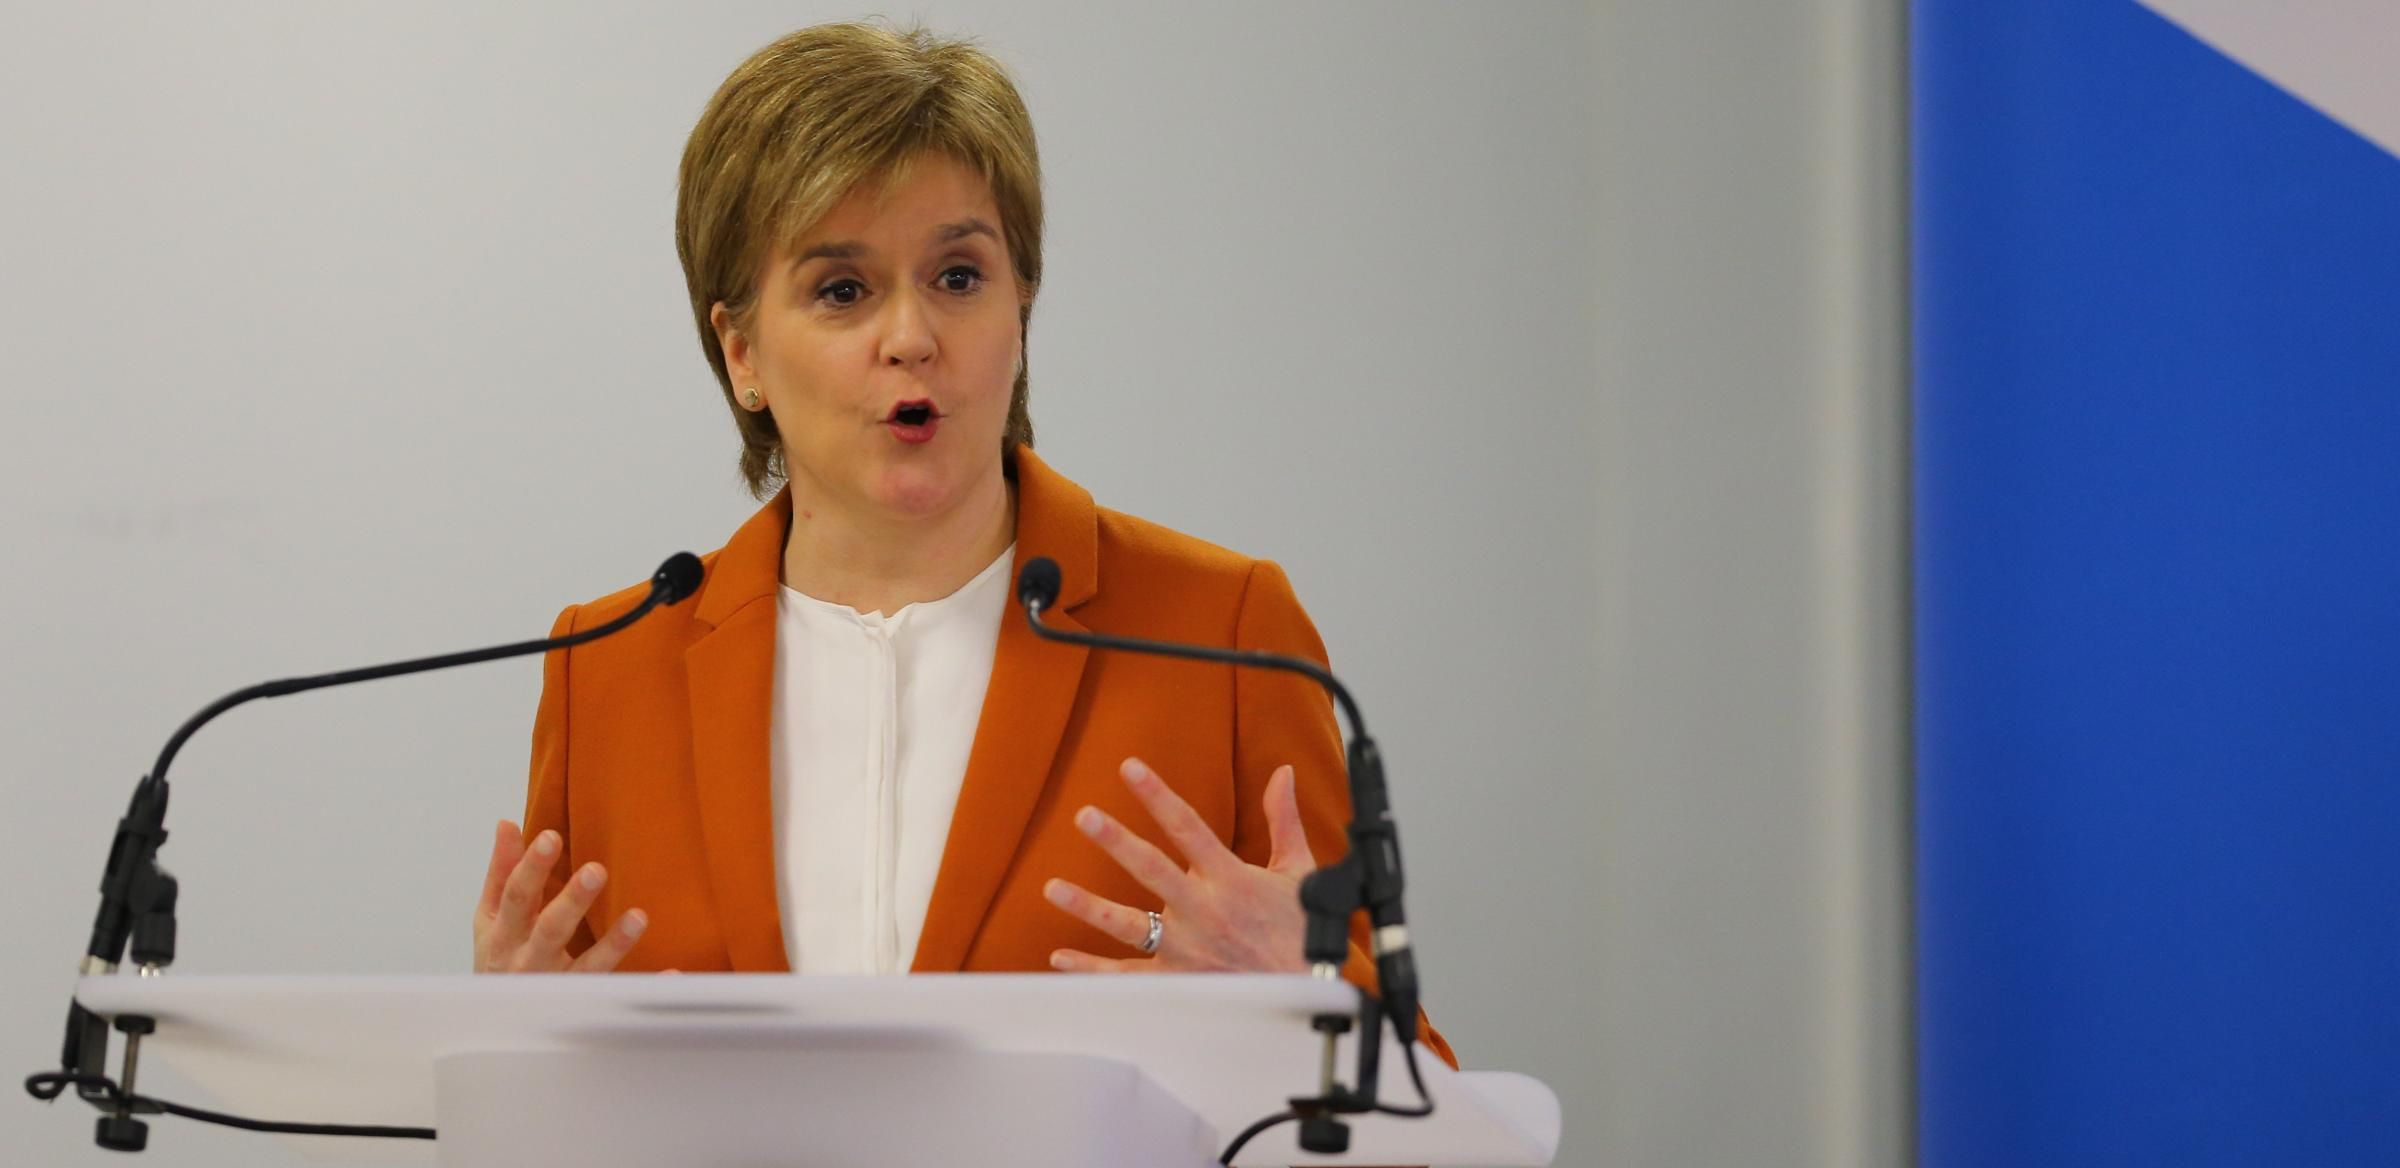 Nicola Sturgeon defended the Wilson report after criticism from left-wing analysts